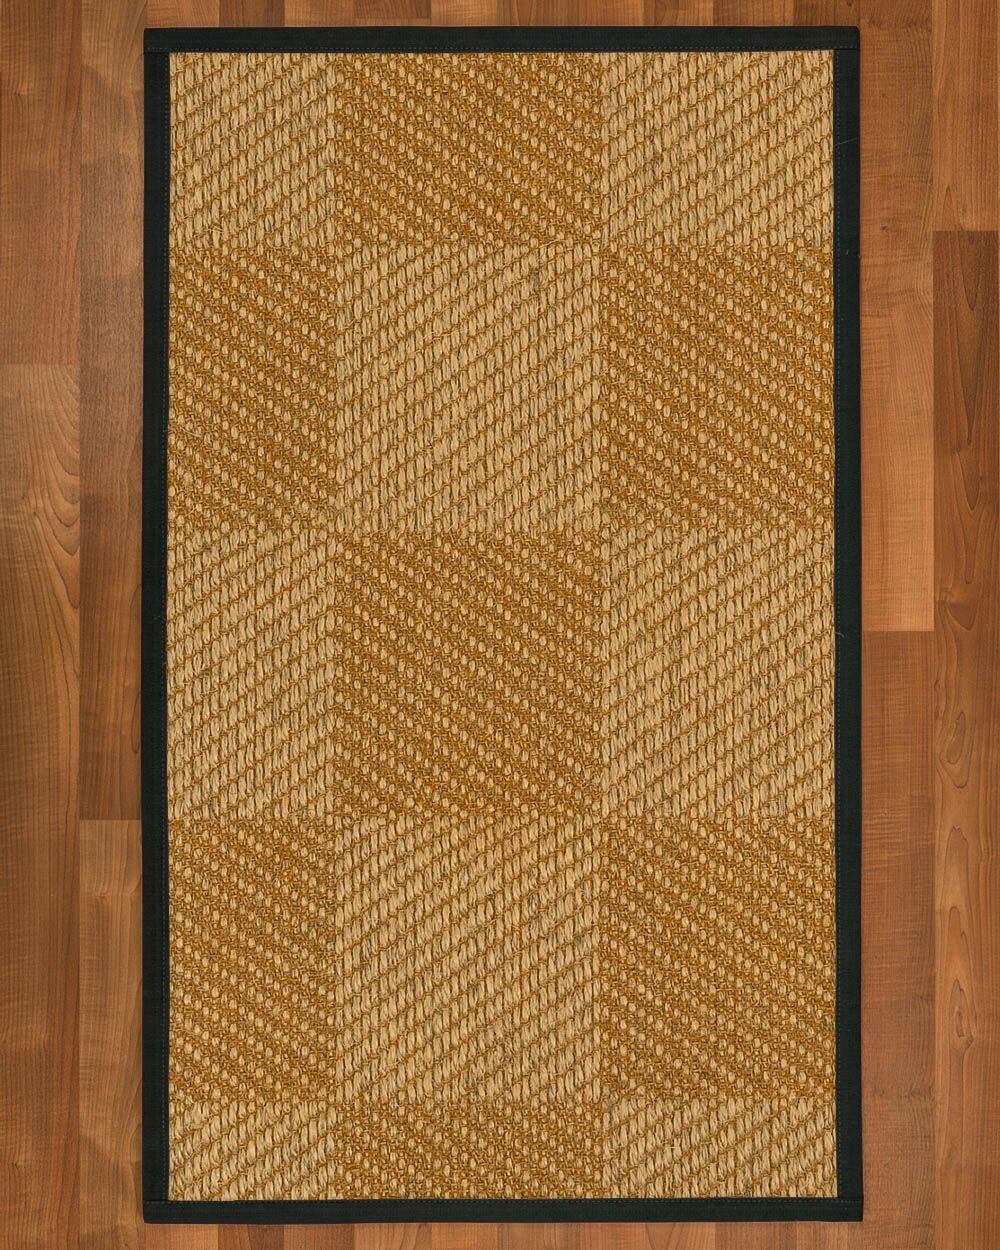 Adley Hand-Woven Beige Area Rug Rug Size: Rectangle 6' X 9'